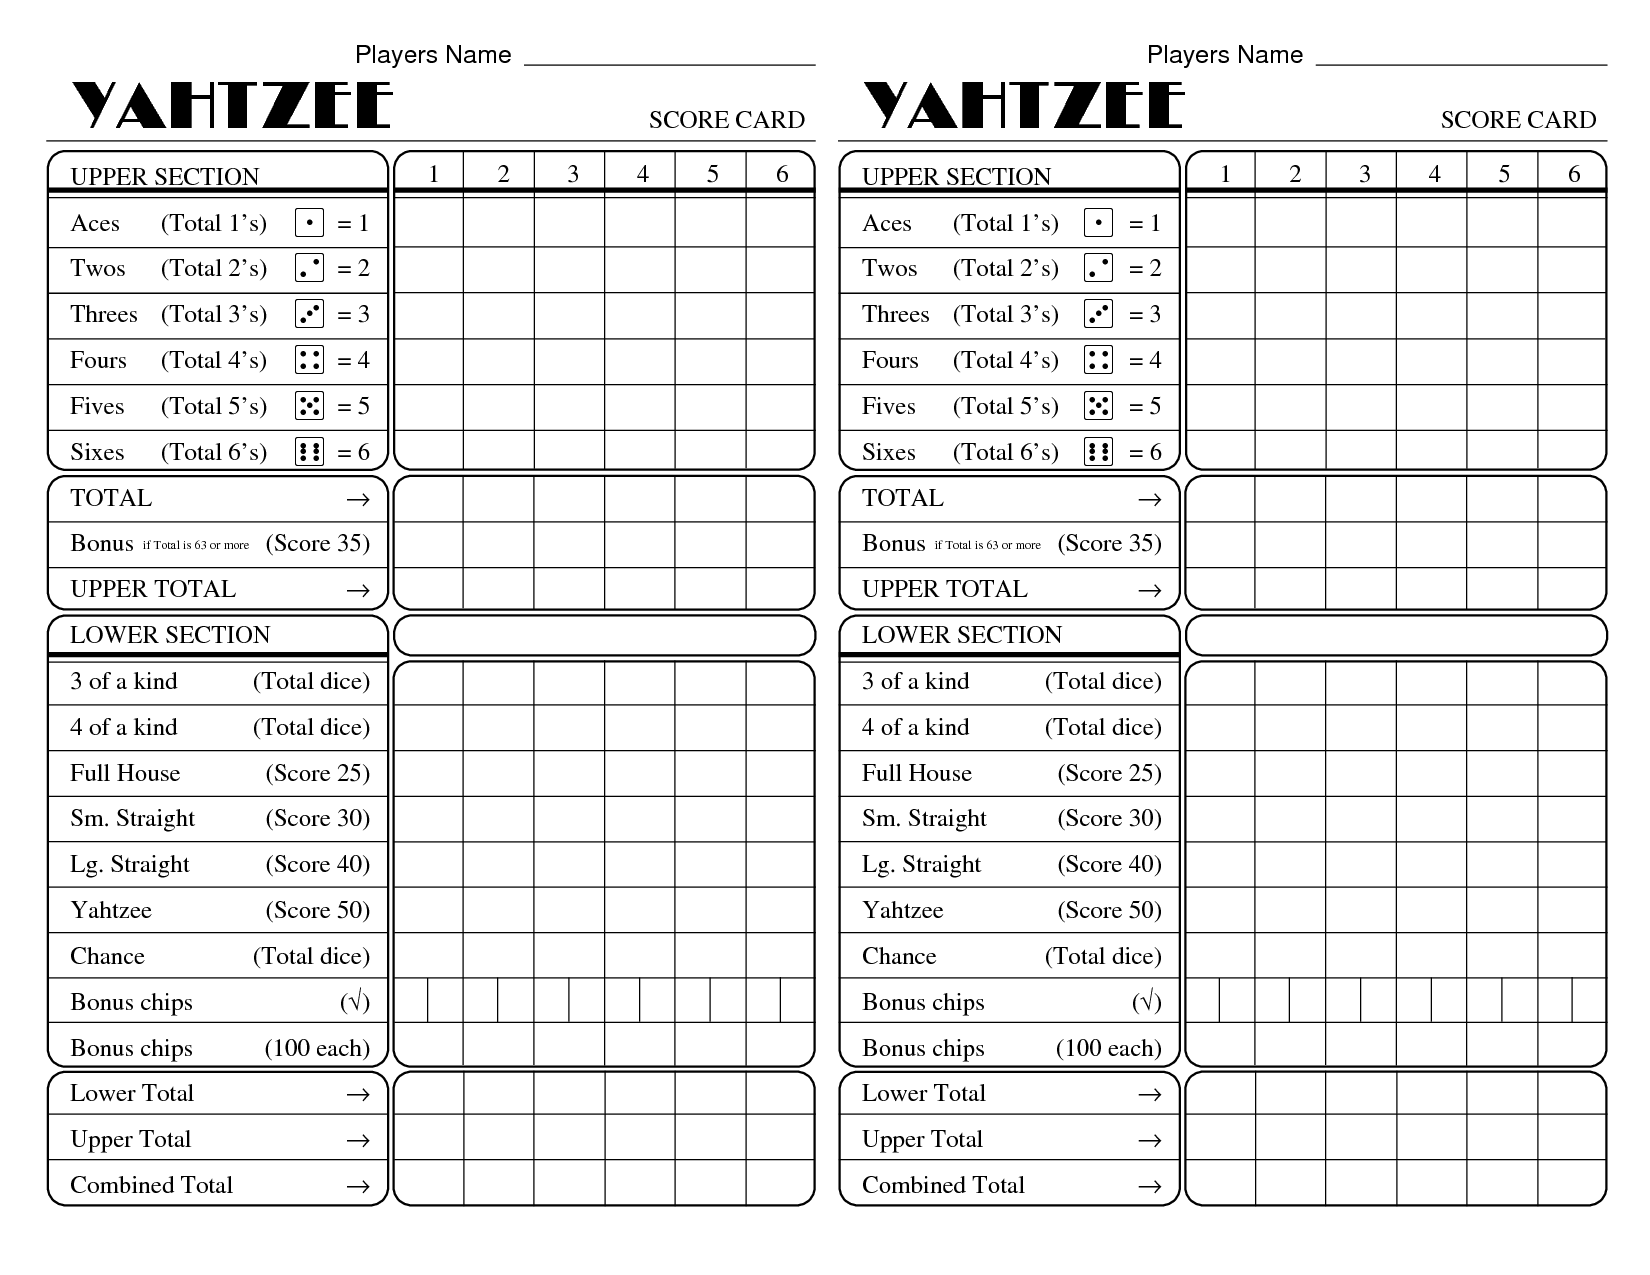 image about Yahtzee Score Card Printable titled Printable+Yahtzee+Rating+Sheets For The Kiddos Yahtzee